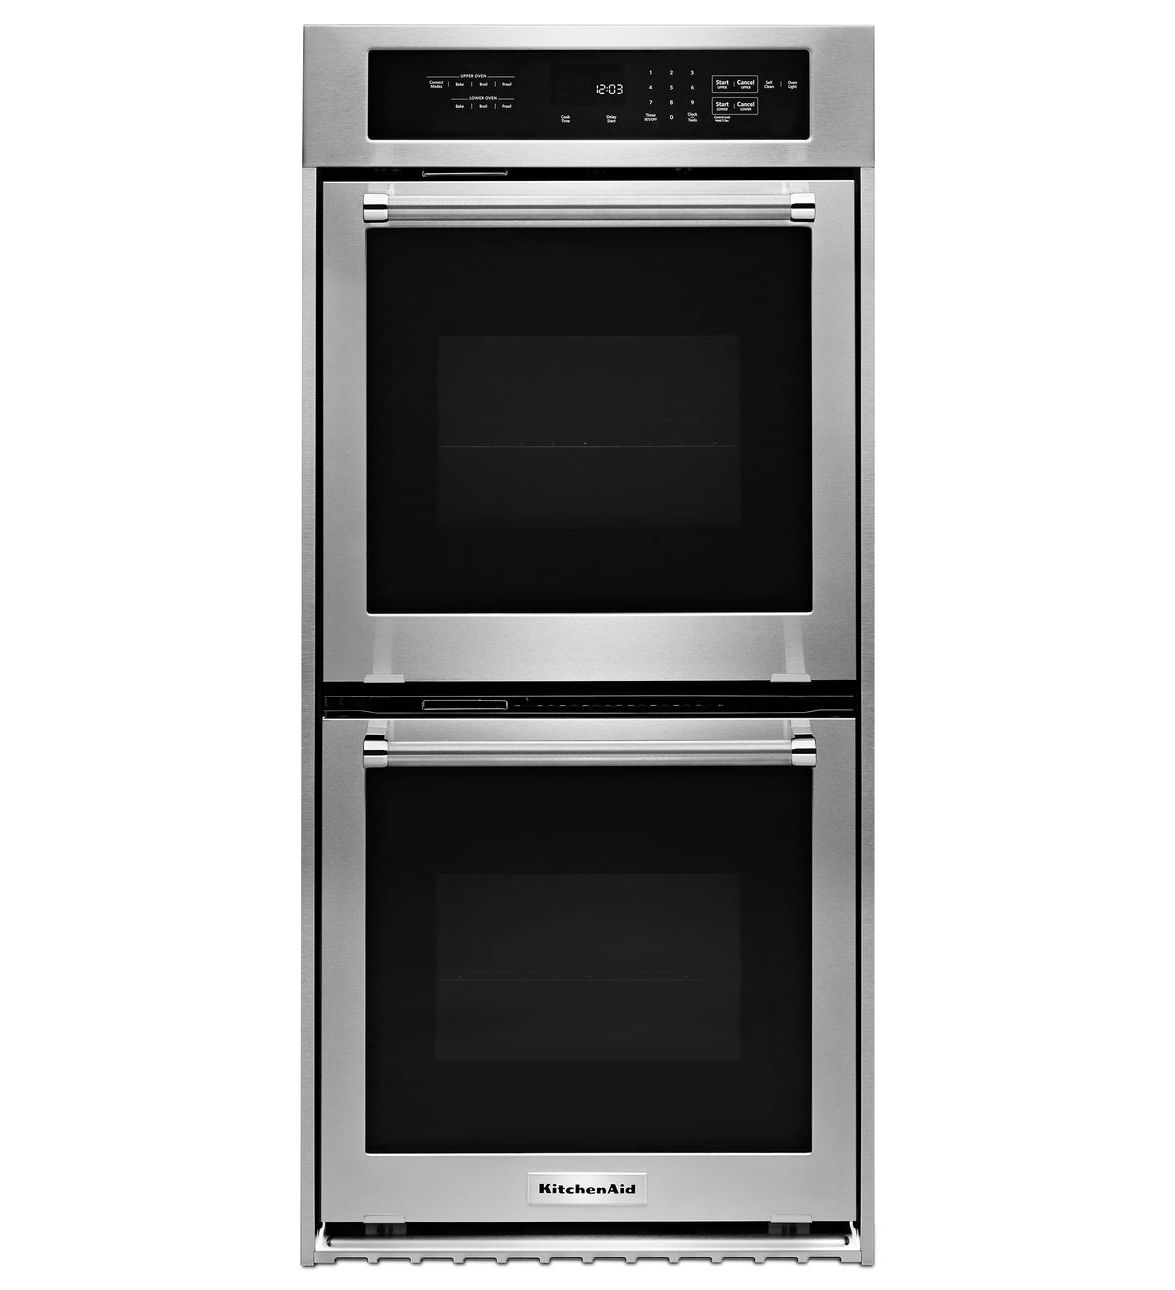 Kitchenaid 24 Inch Convection Double Wall Oven Architect Series Ii Handles Master